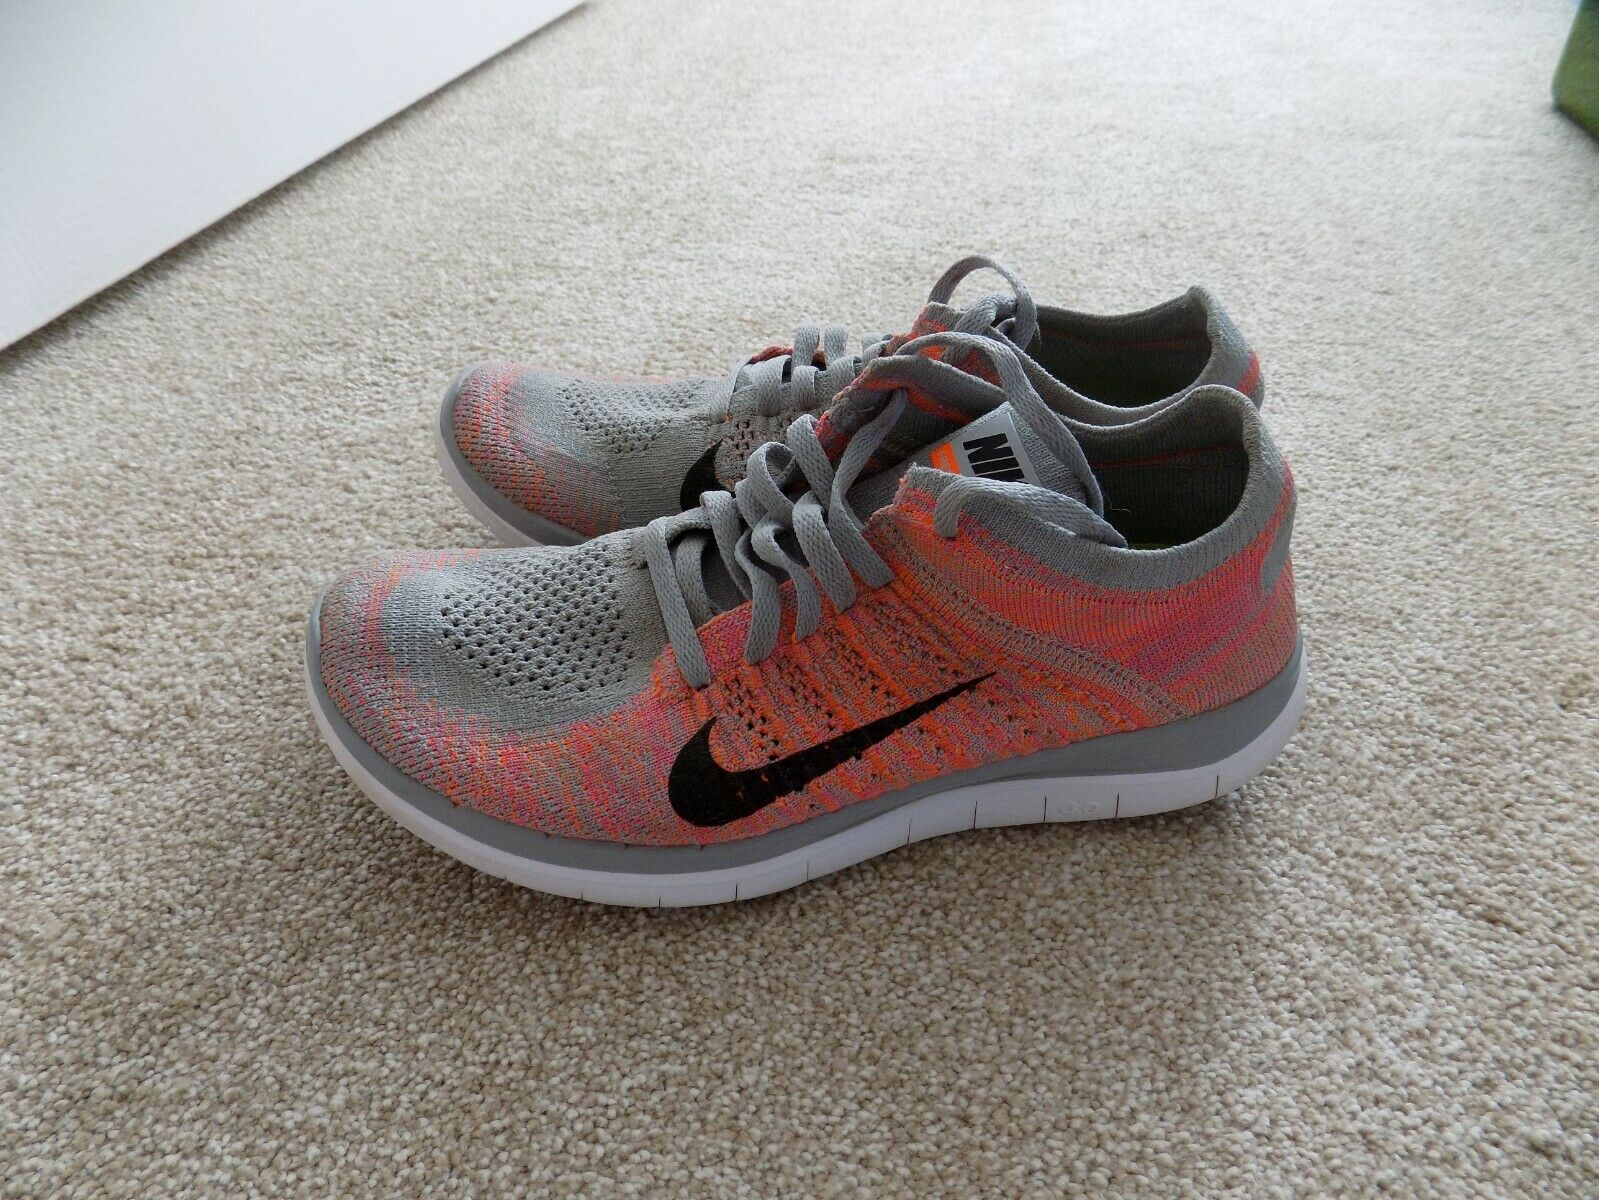 check out 581f0 f7103 WOMENS 7.5 NIKE FREE 4.0 FLYKNIT RUNNING SHOES WOLF GREY PINK BLACK WHITE  631050